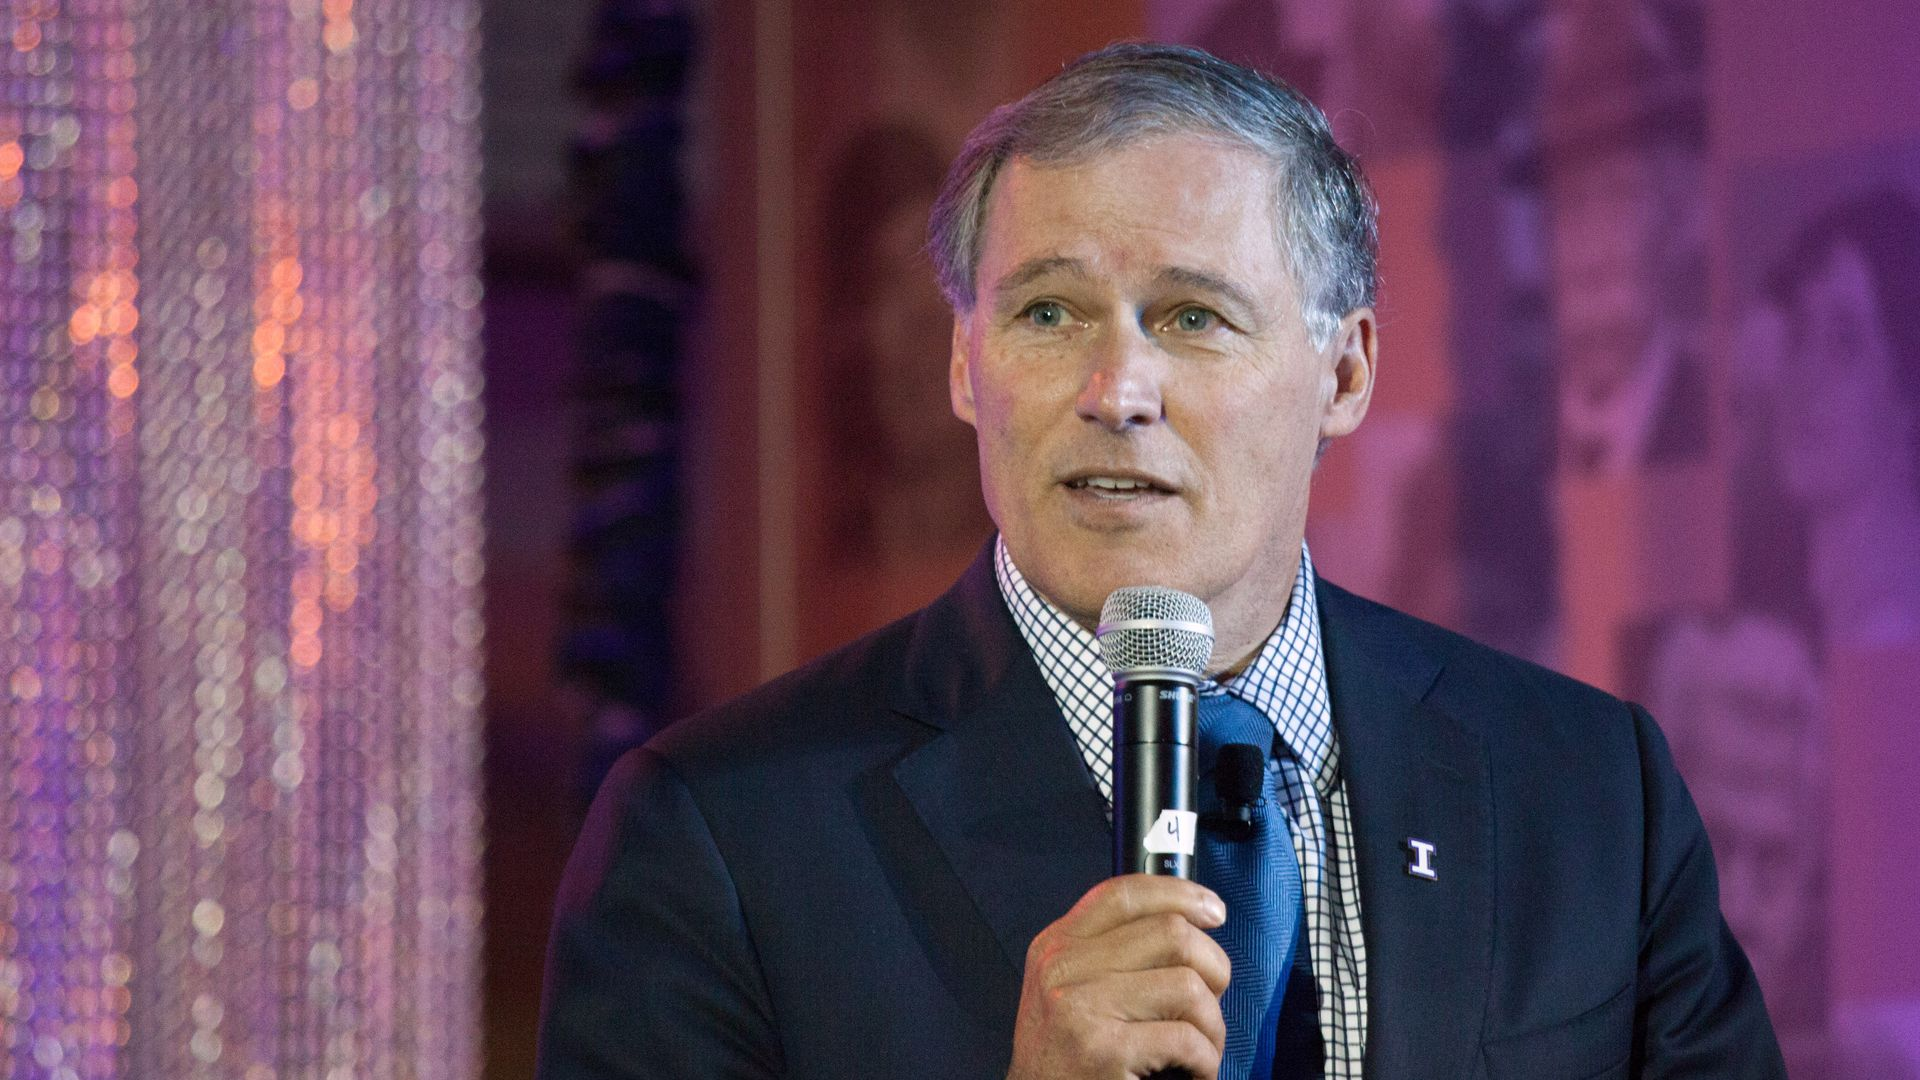 Jay Inslee on the issues, in under 500 words